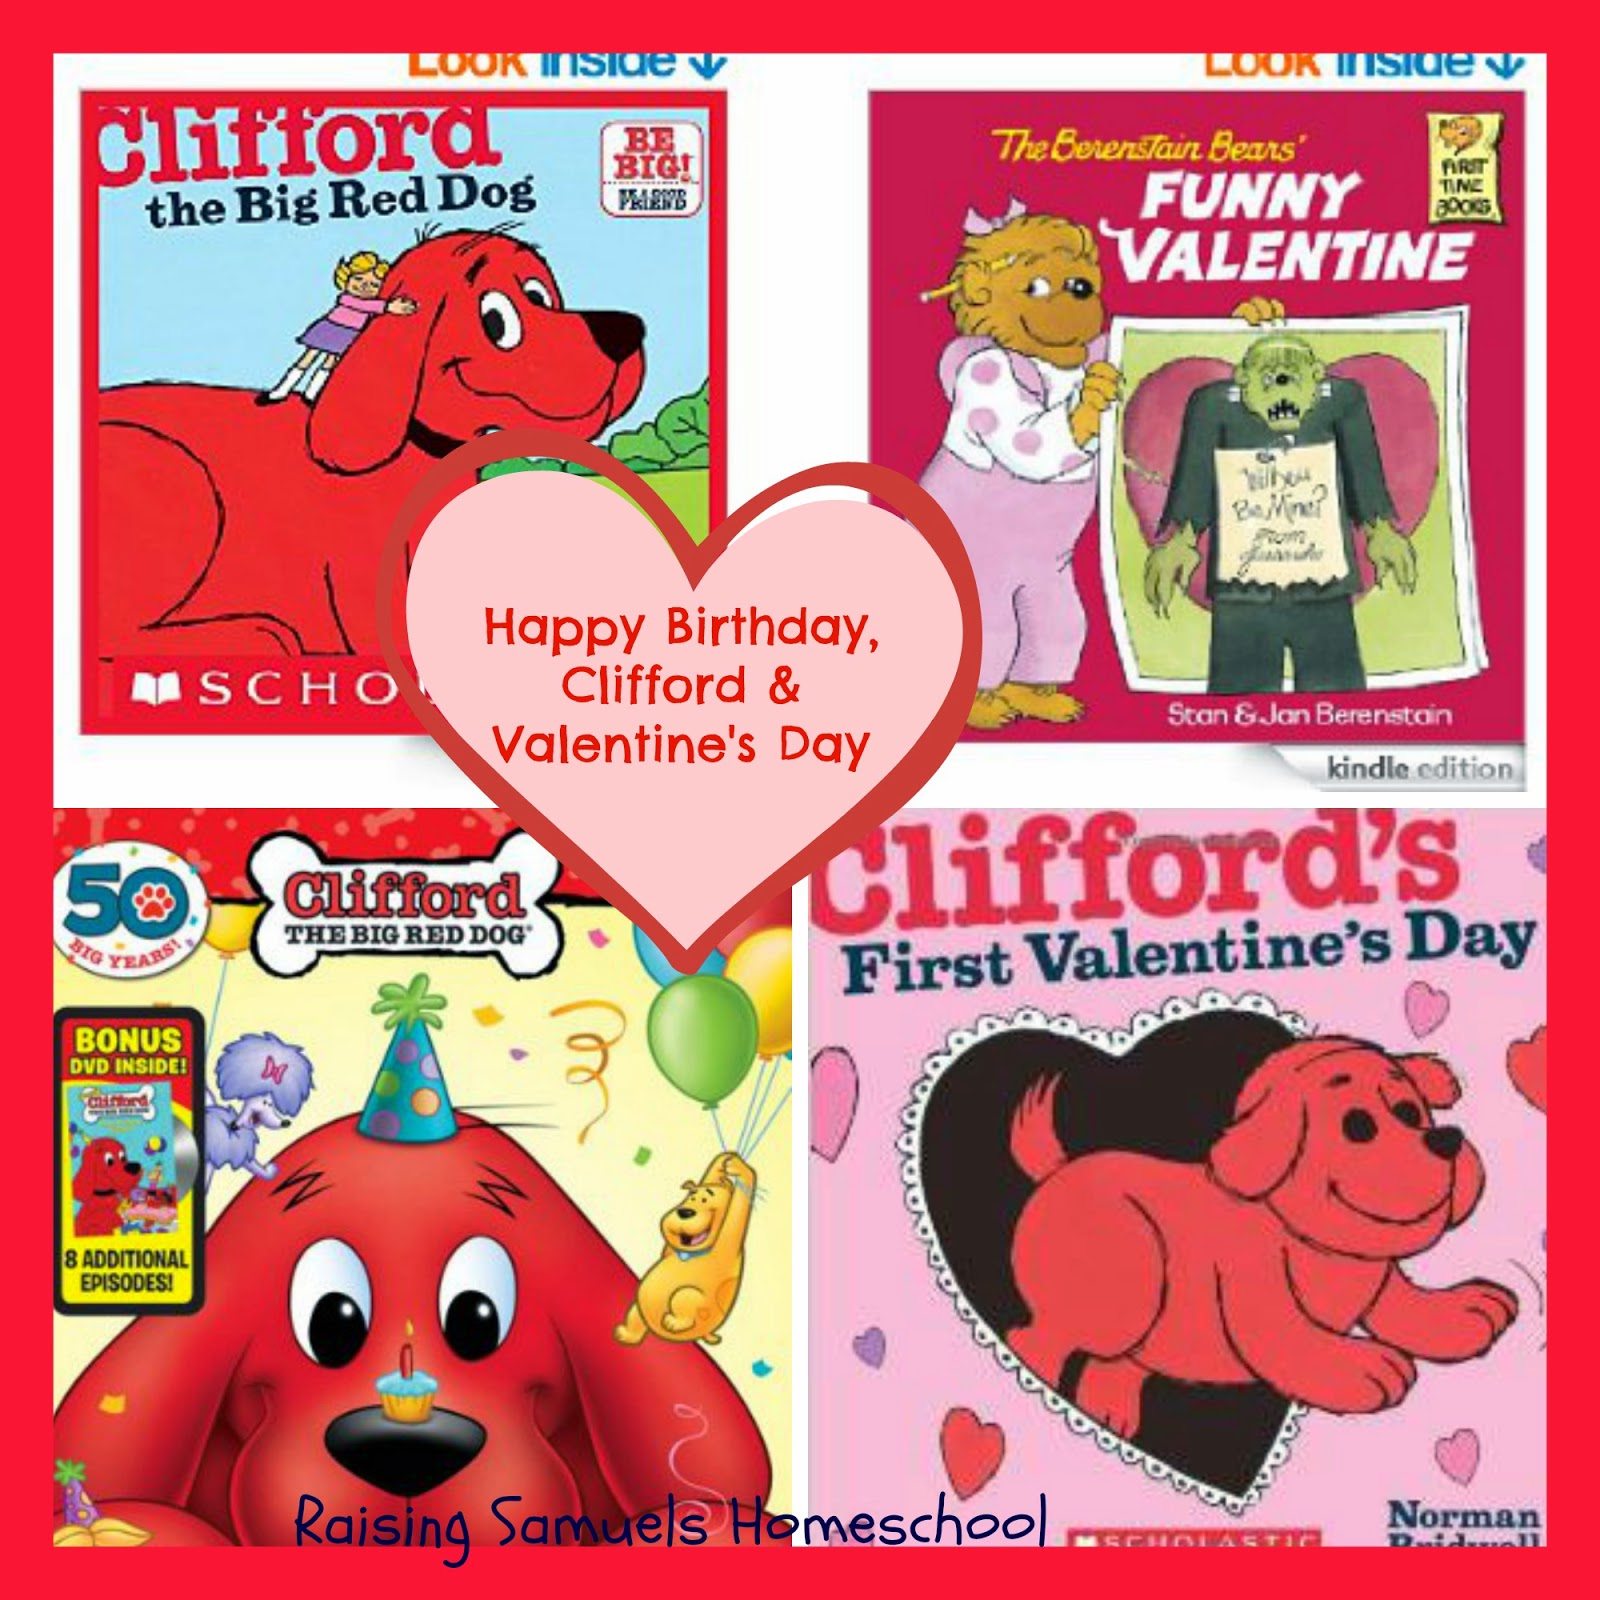 Happy Birthday, Clifford & Valentine's Day